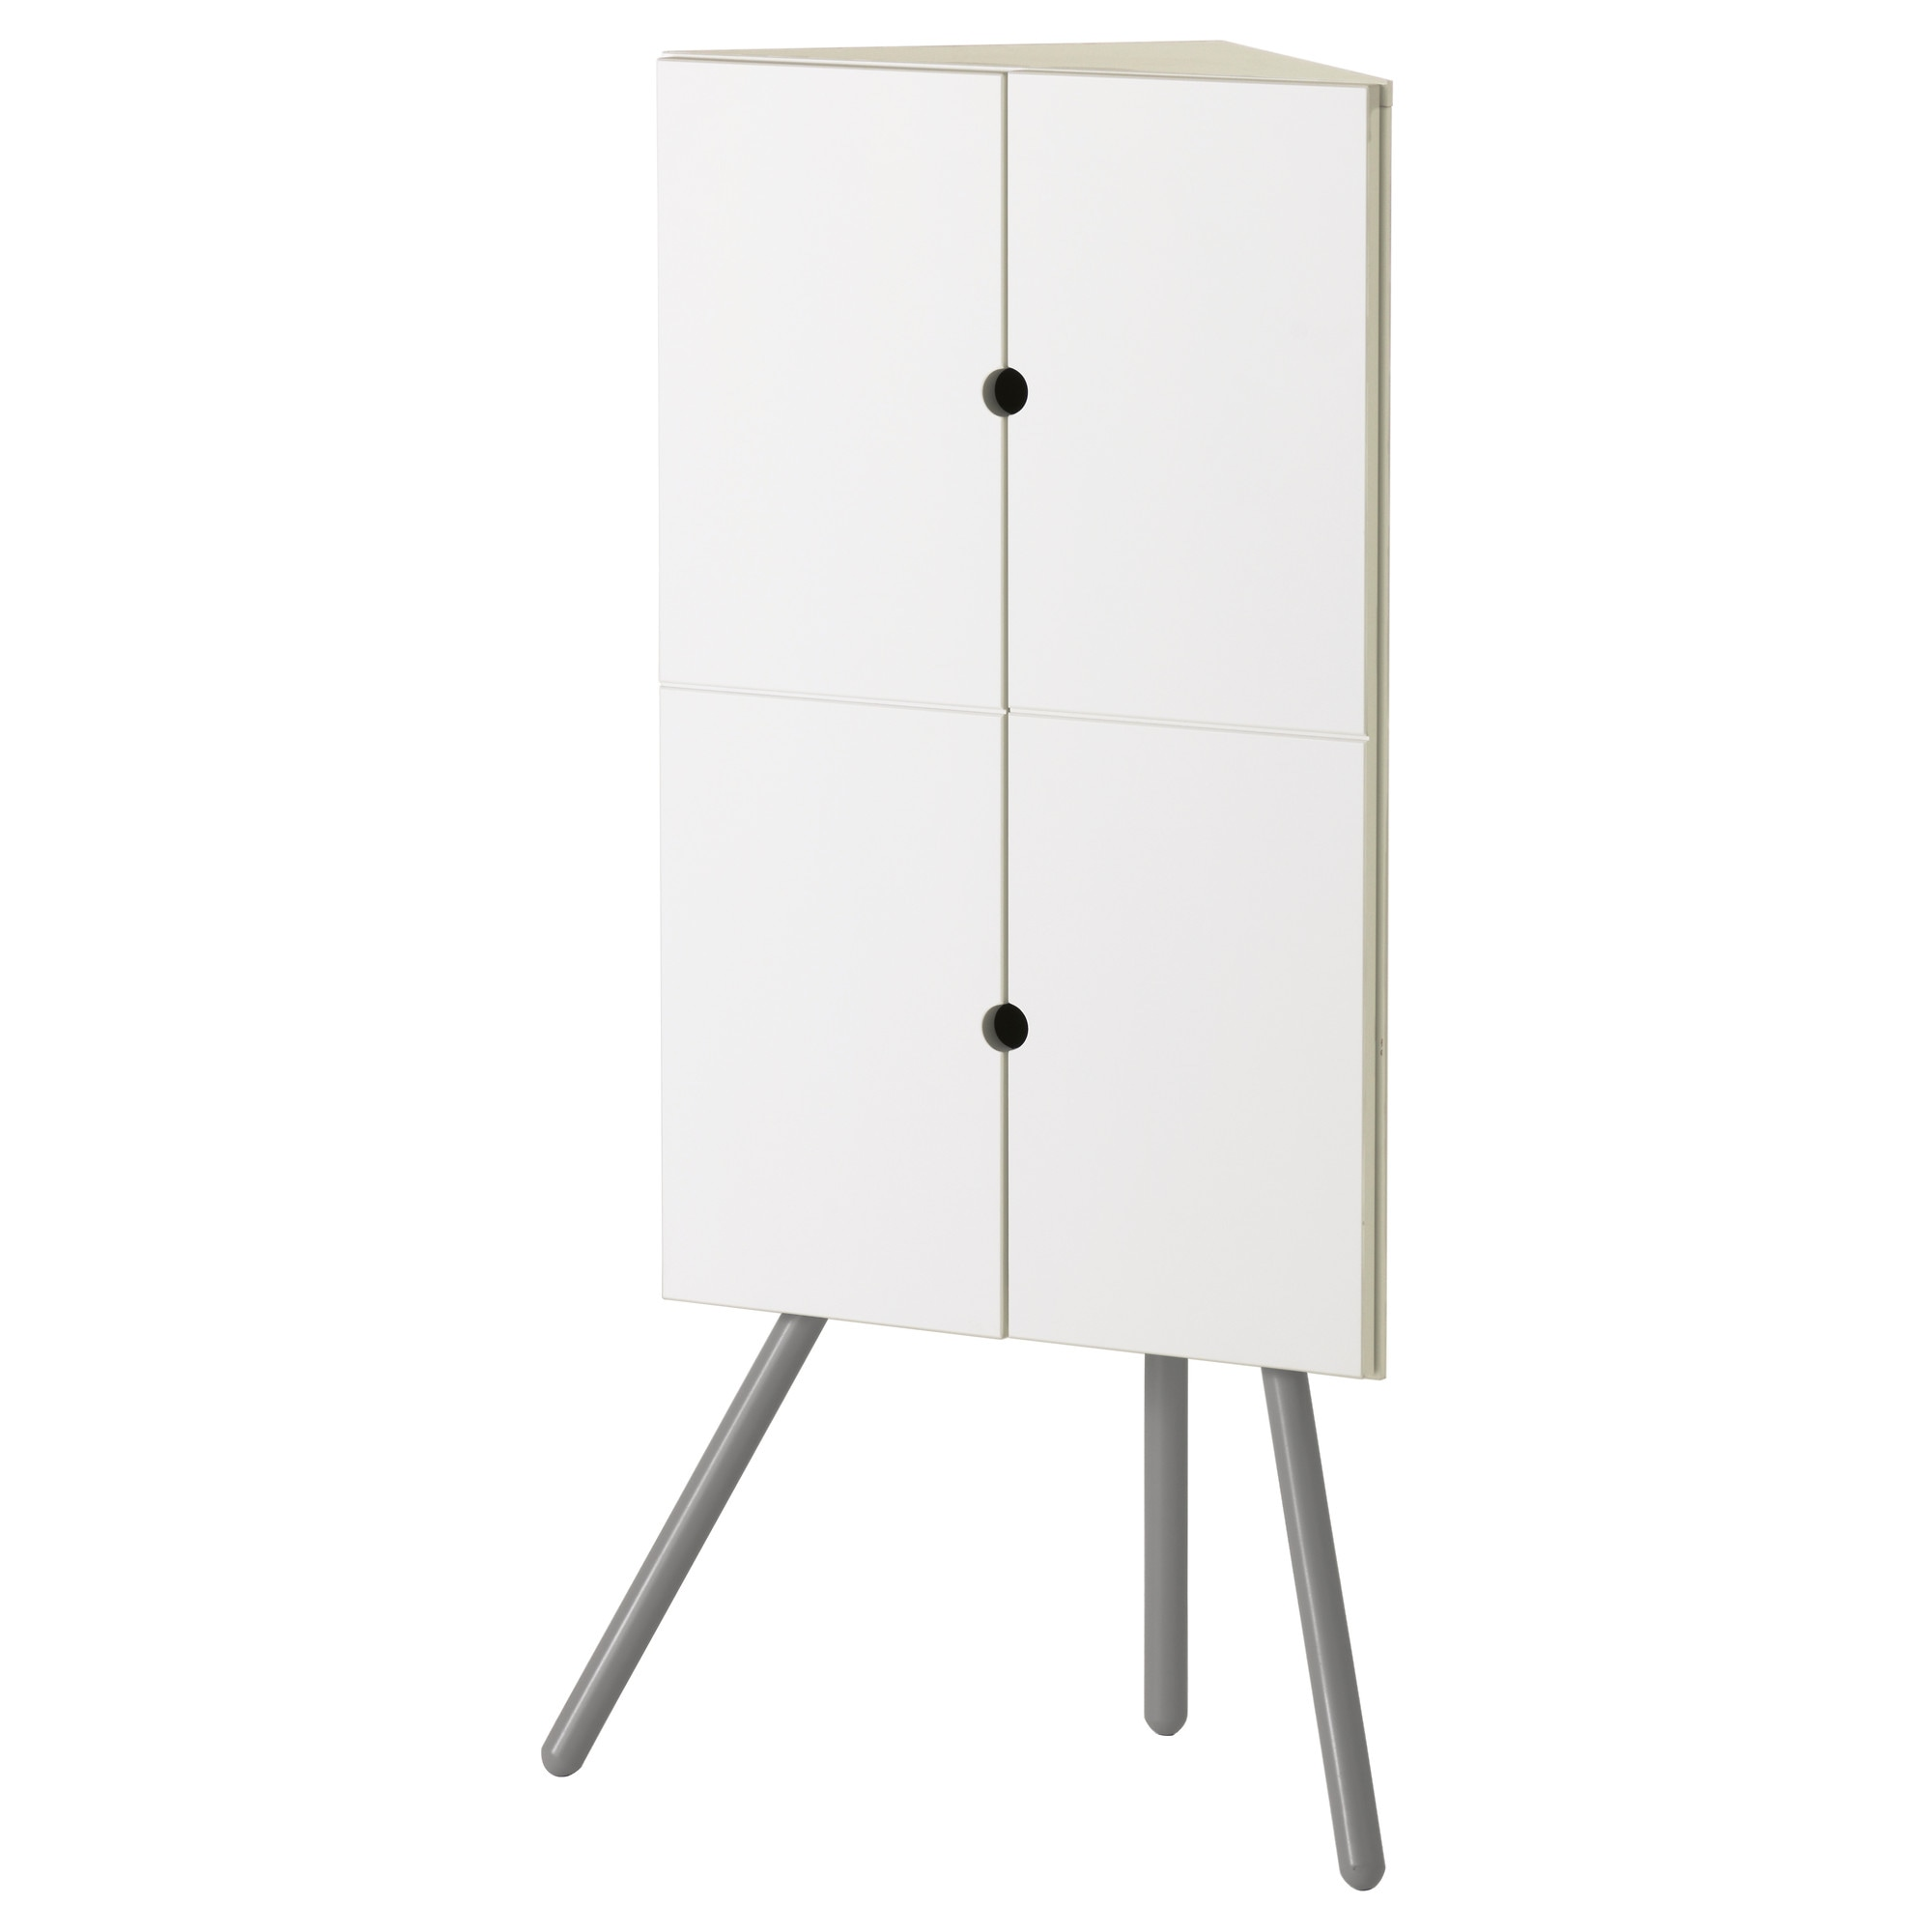 Meuble En Angle Ikea Fashion Designs # Meubles D'Angle Salon